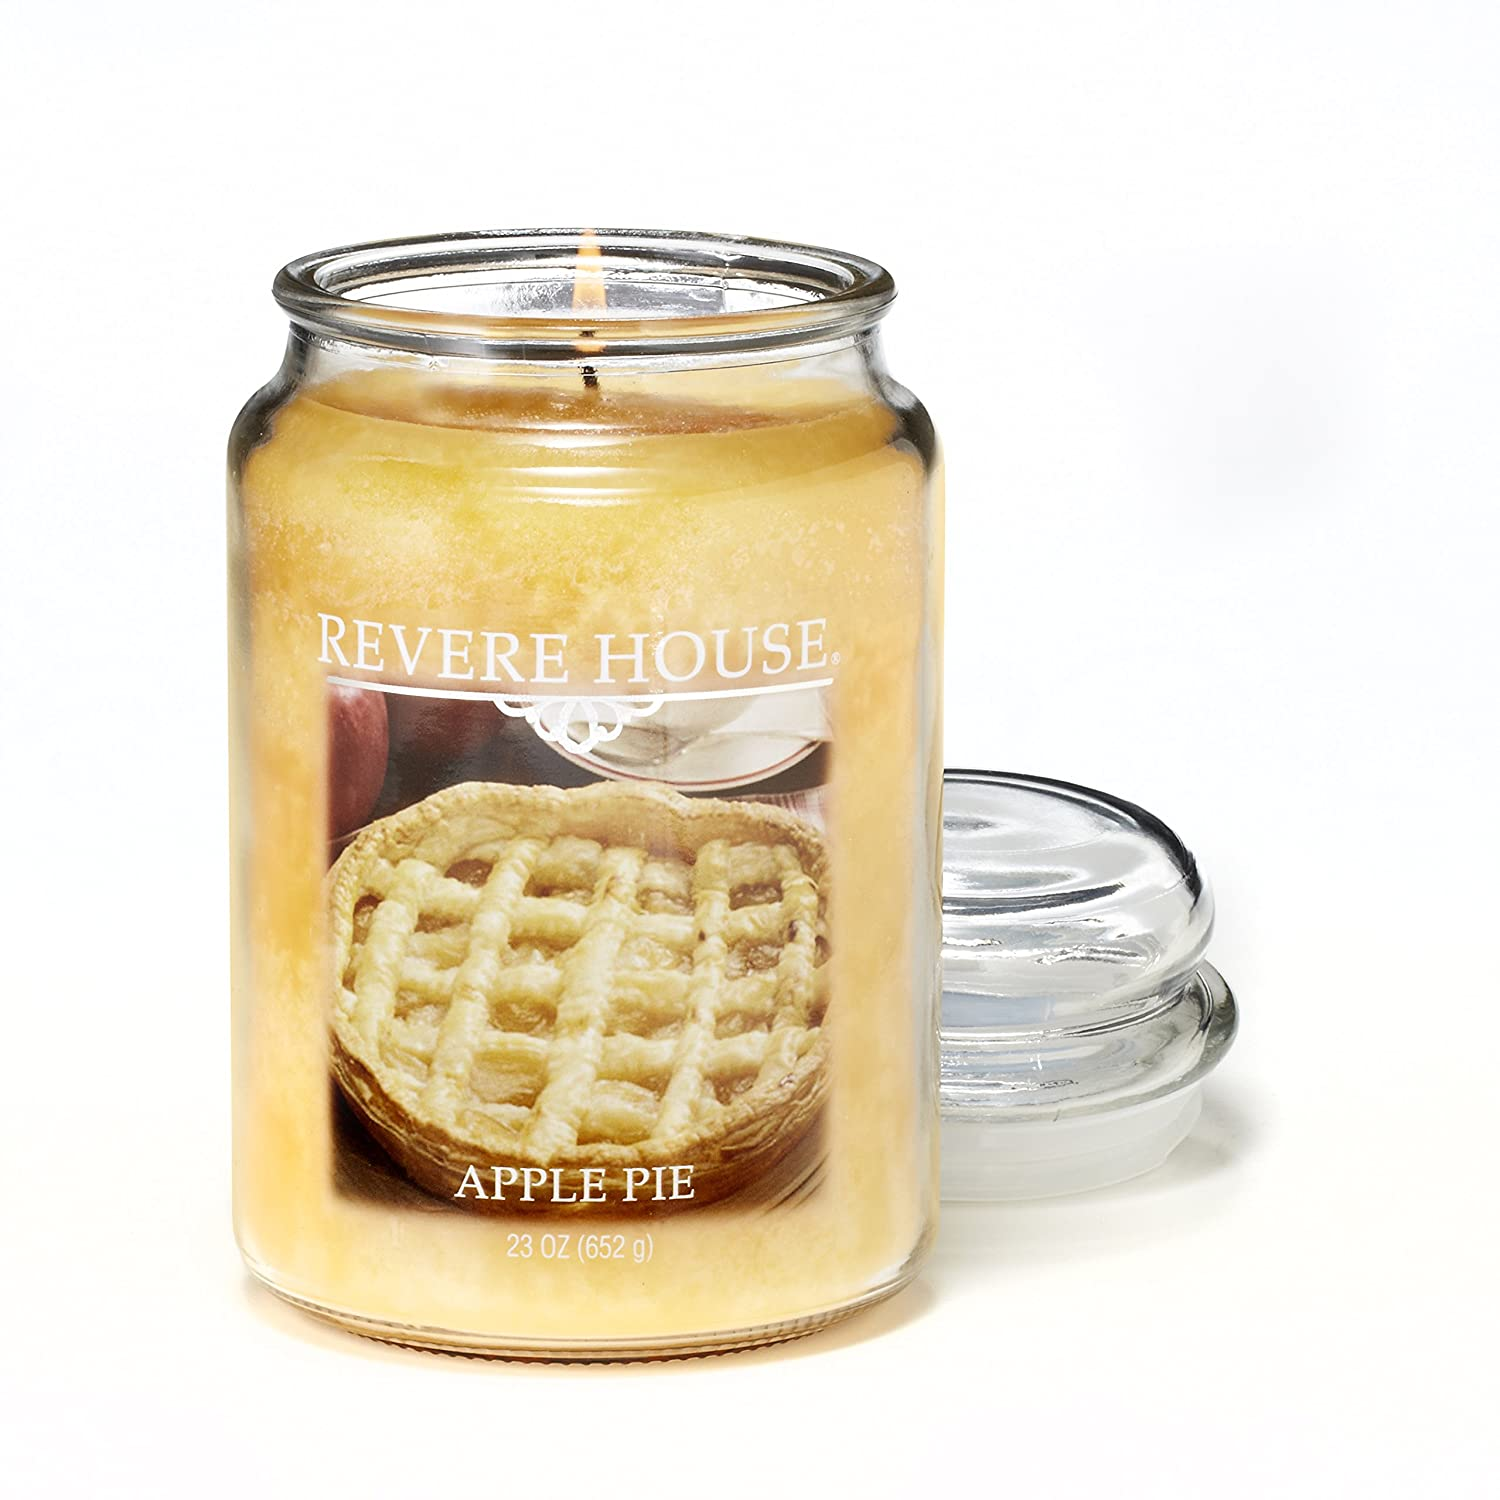 CANDLE-LITE Revere House Scented Apple Pie Single Wick 23oz Large Glass Jar Candle, Food Spice Gourmand Fragrance, 23 oz, Gold